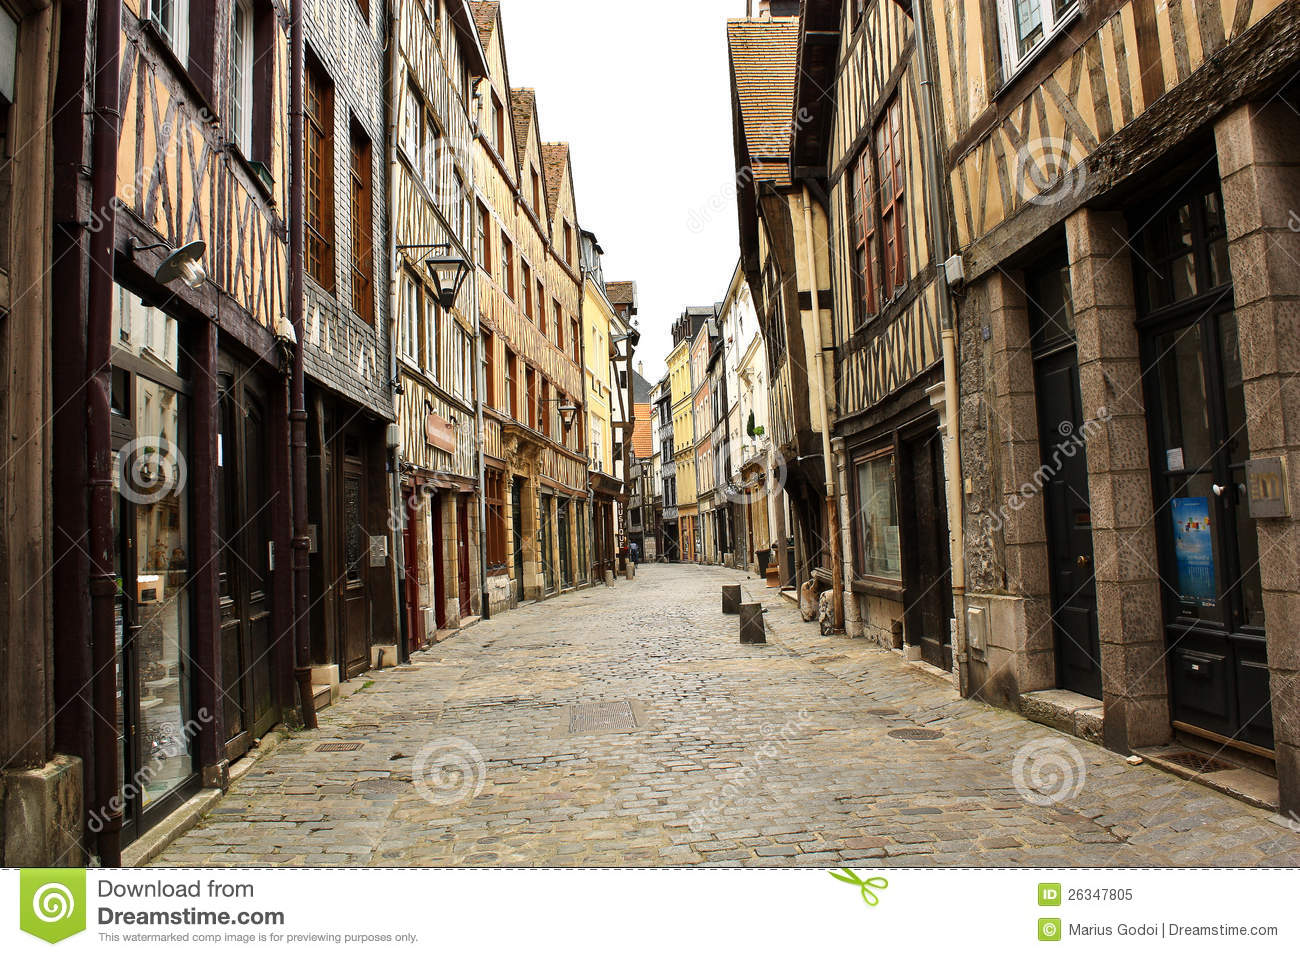 Https Www Dreamstime Com Royalty Free Stock Photo Old Street Rouen Image26347805